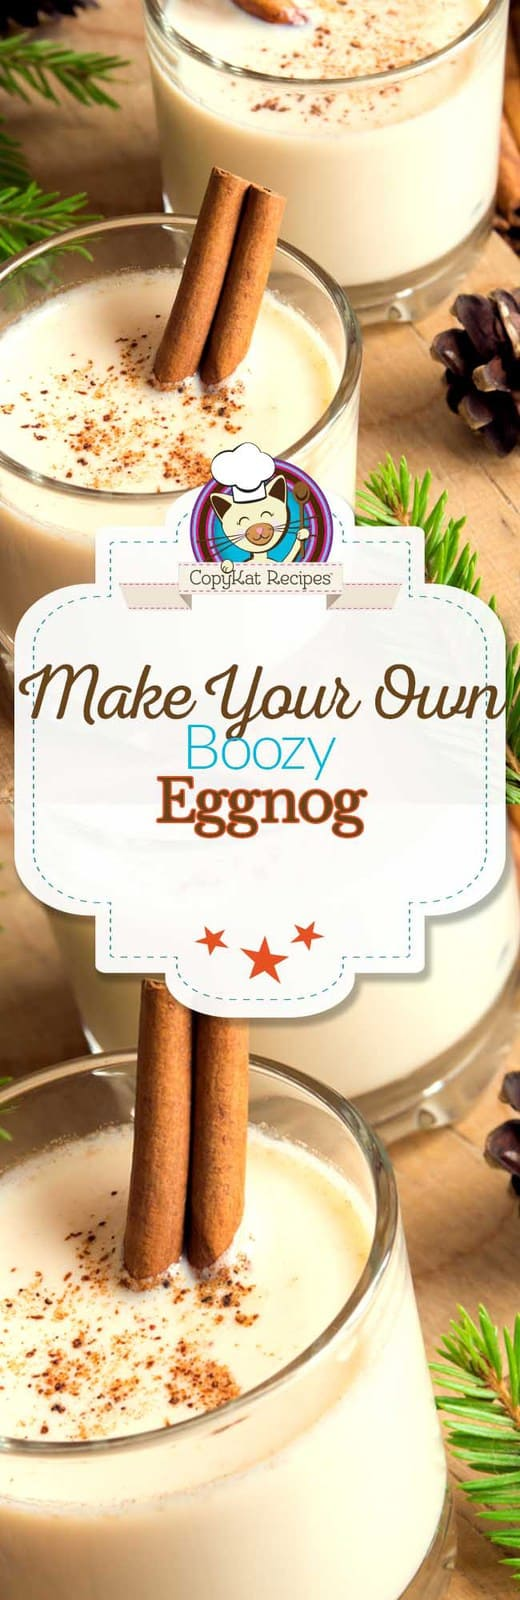 Make your own delicious Boozy Eggnog with this easy recipe.